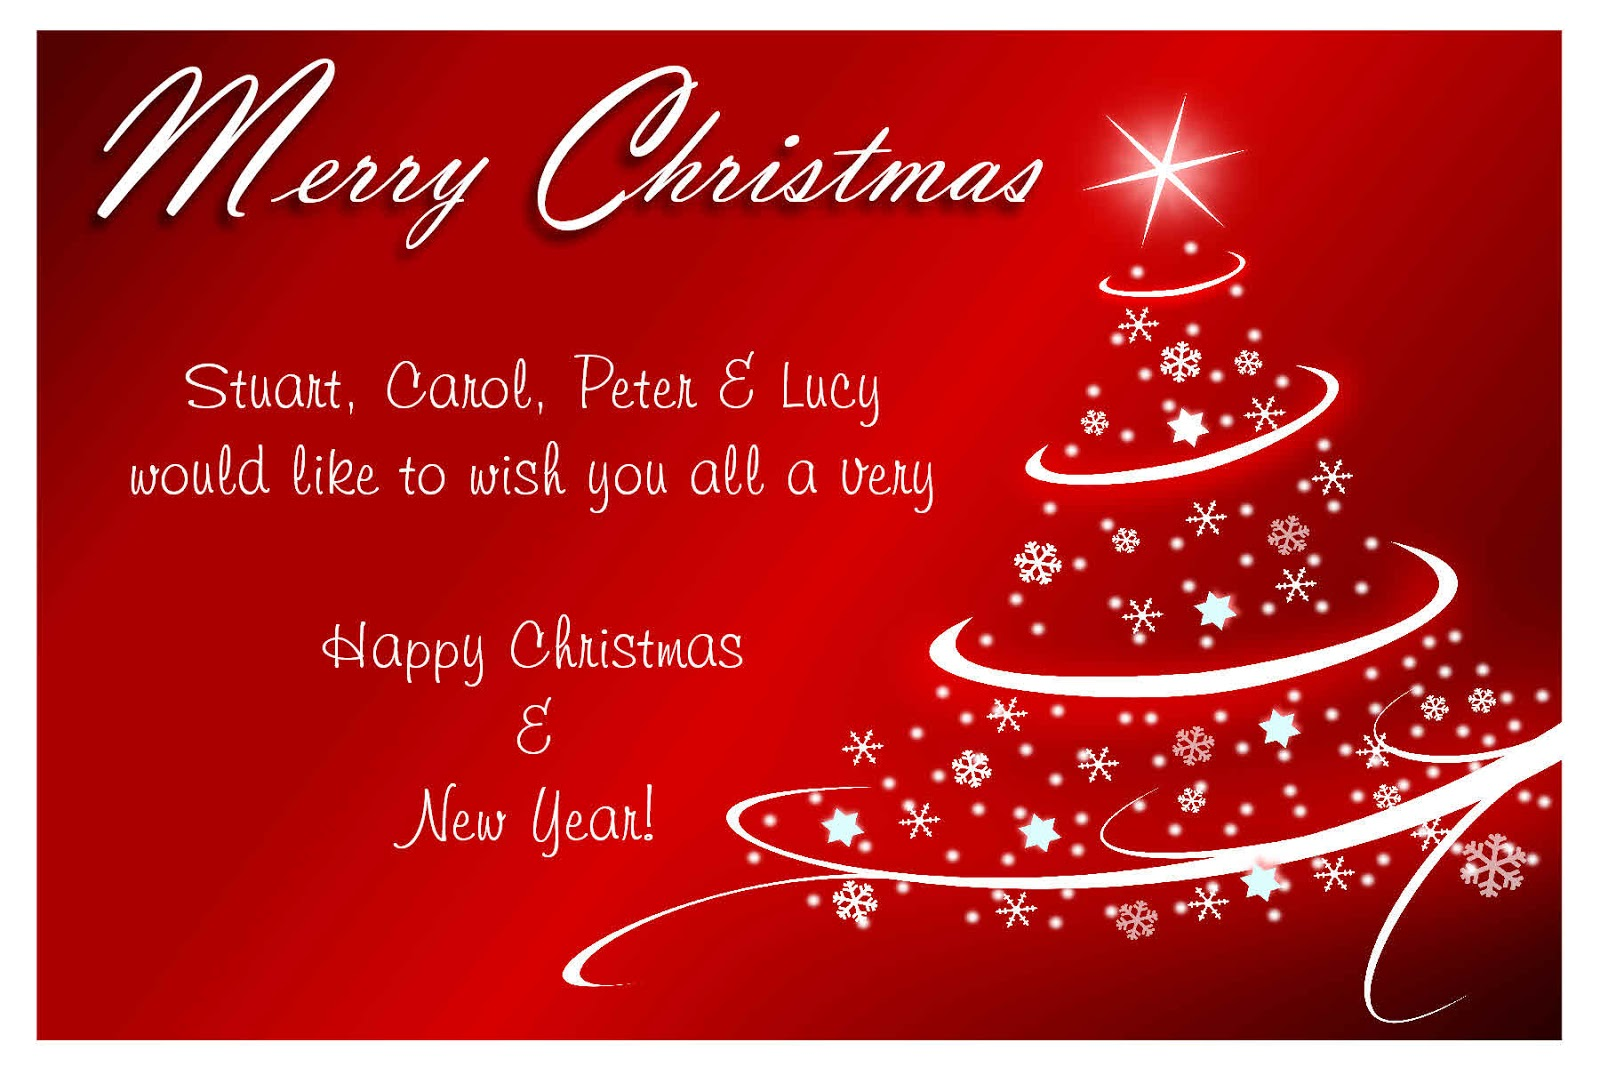 Xmas Greetings Words Christmas Card Sayings Christmas Card Wording